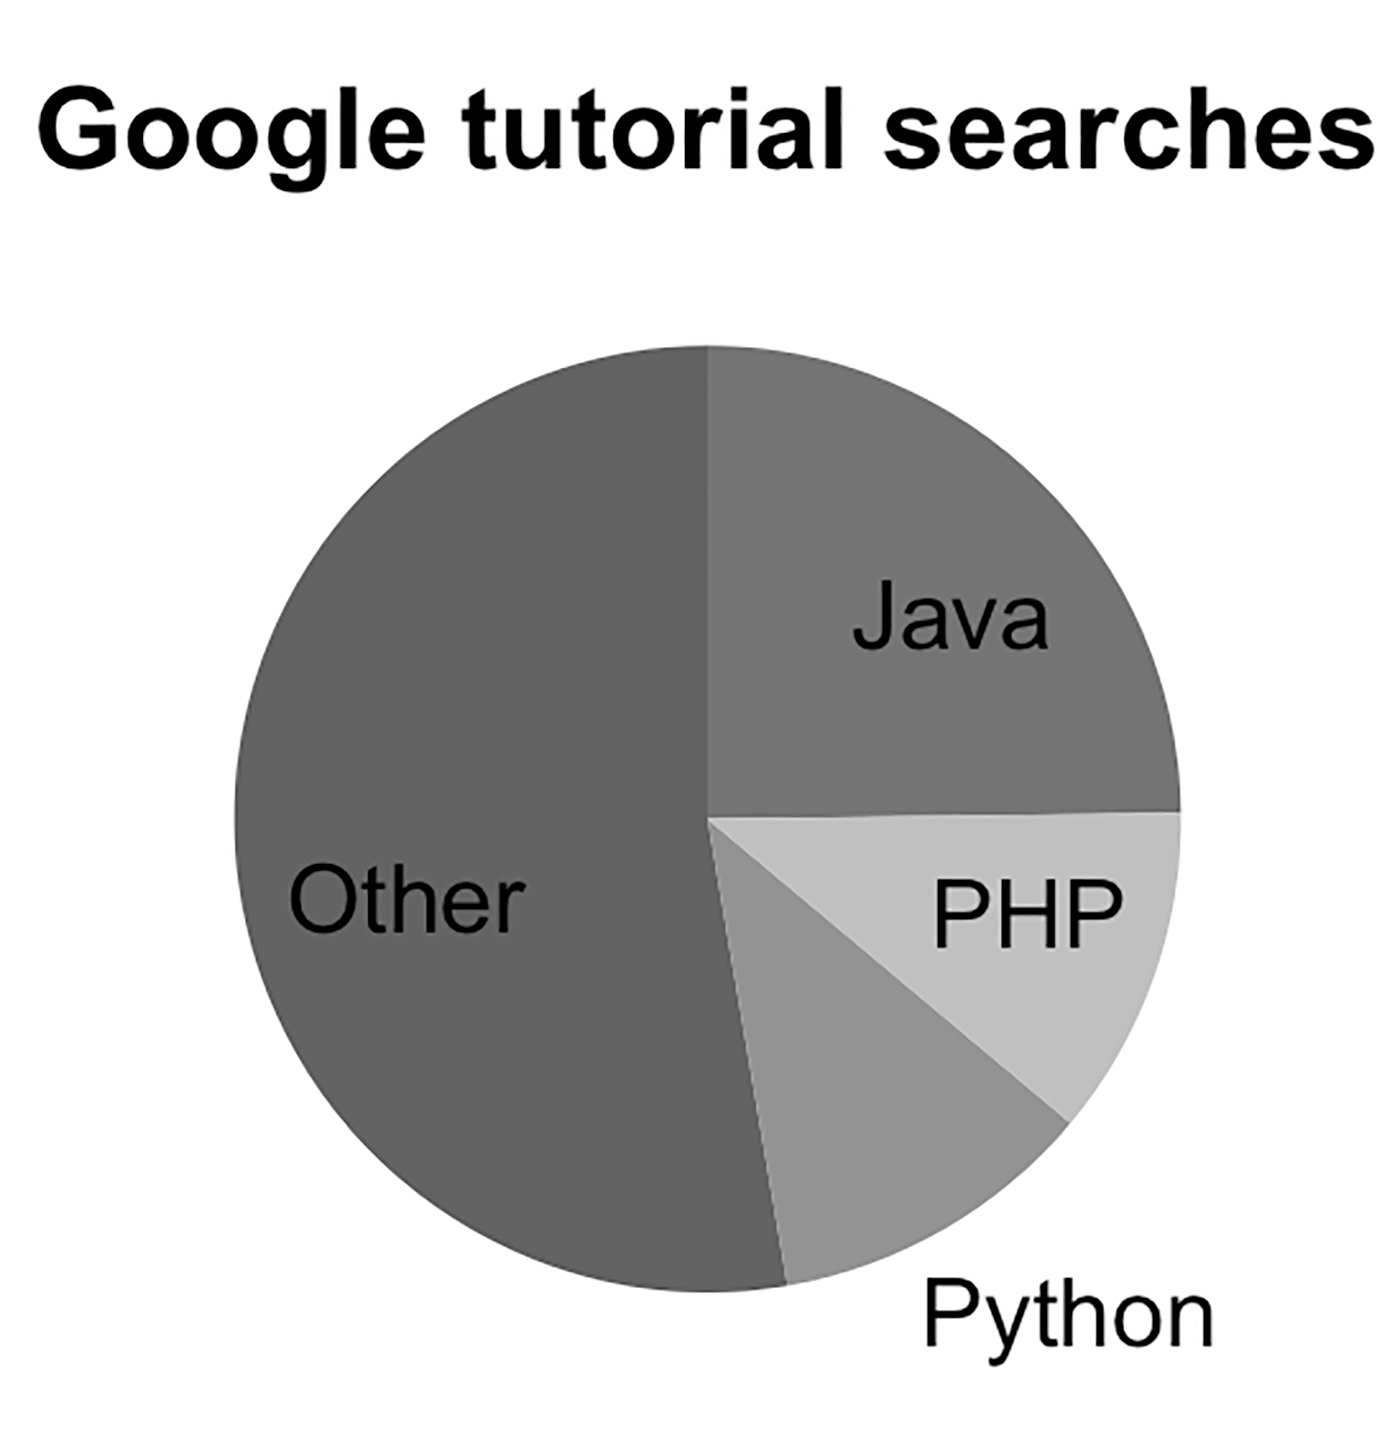 pie chart showing Google searches for programming languages